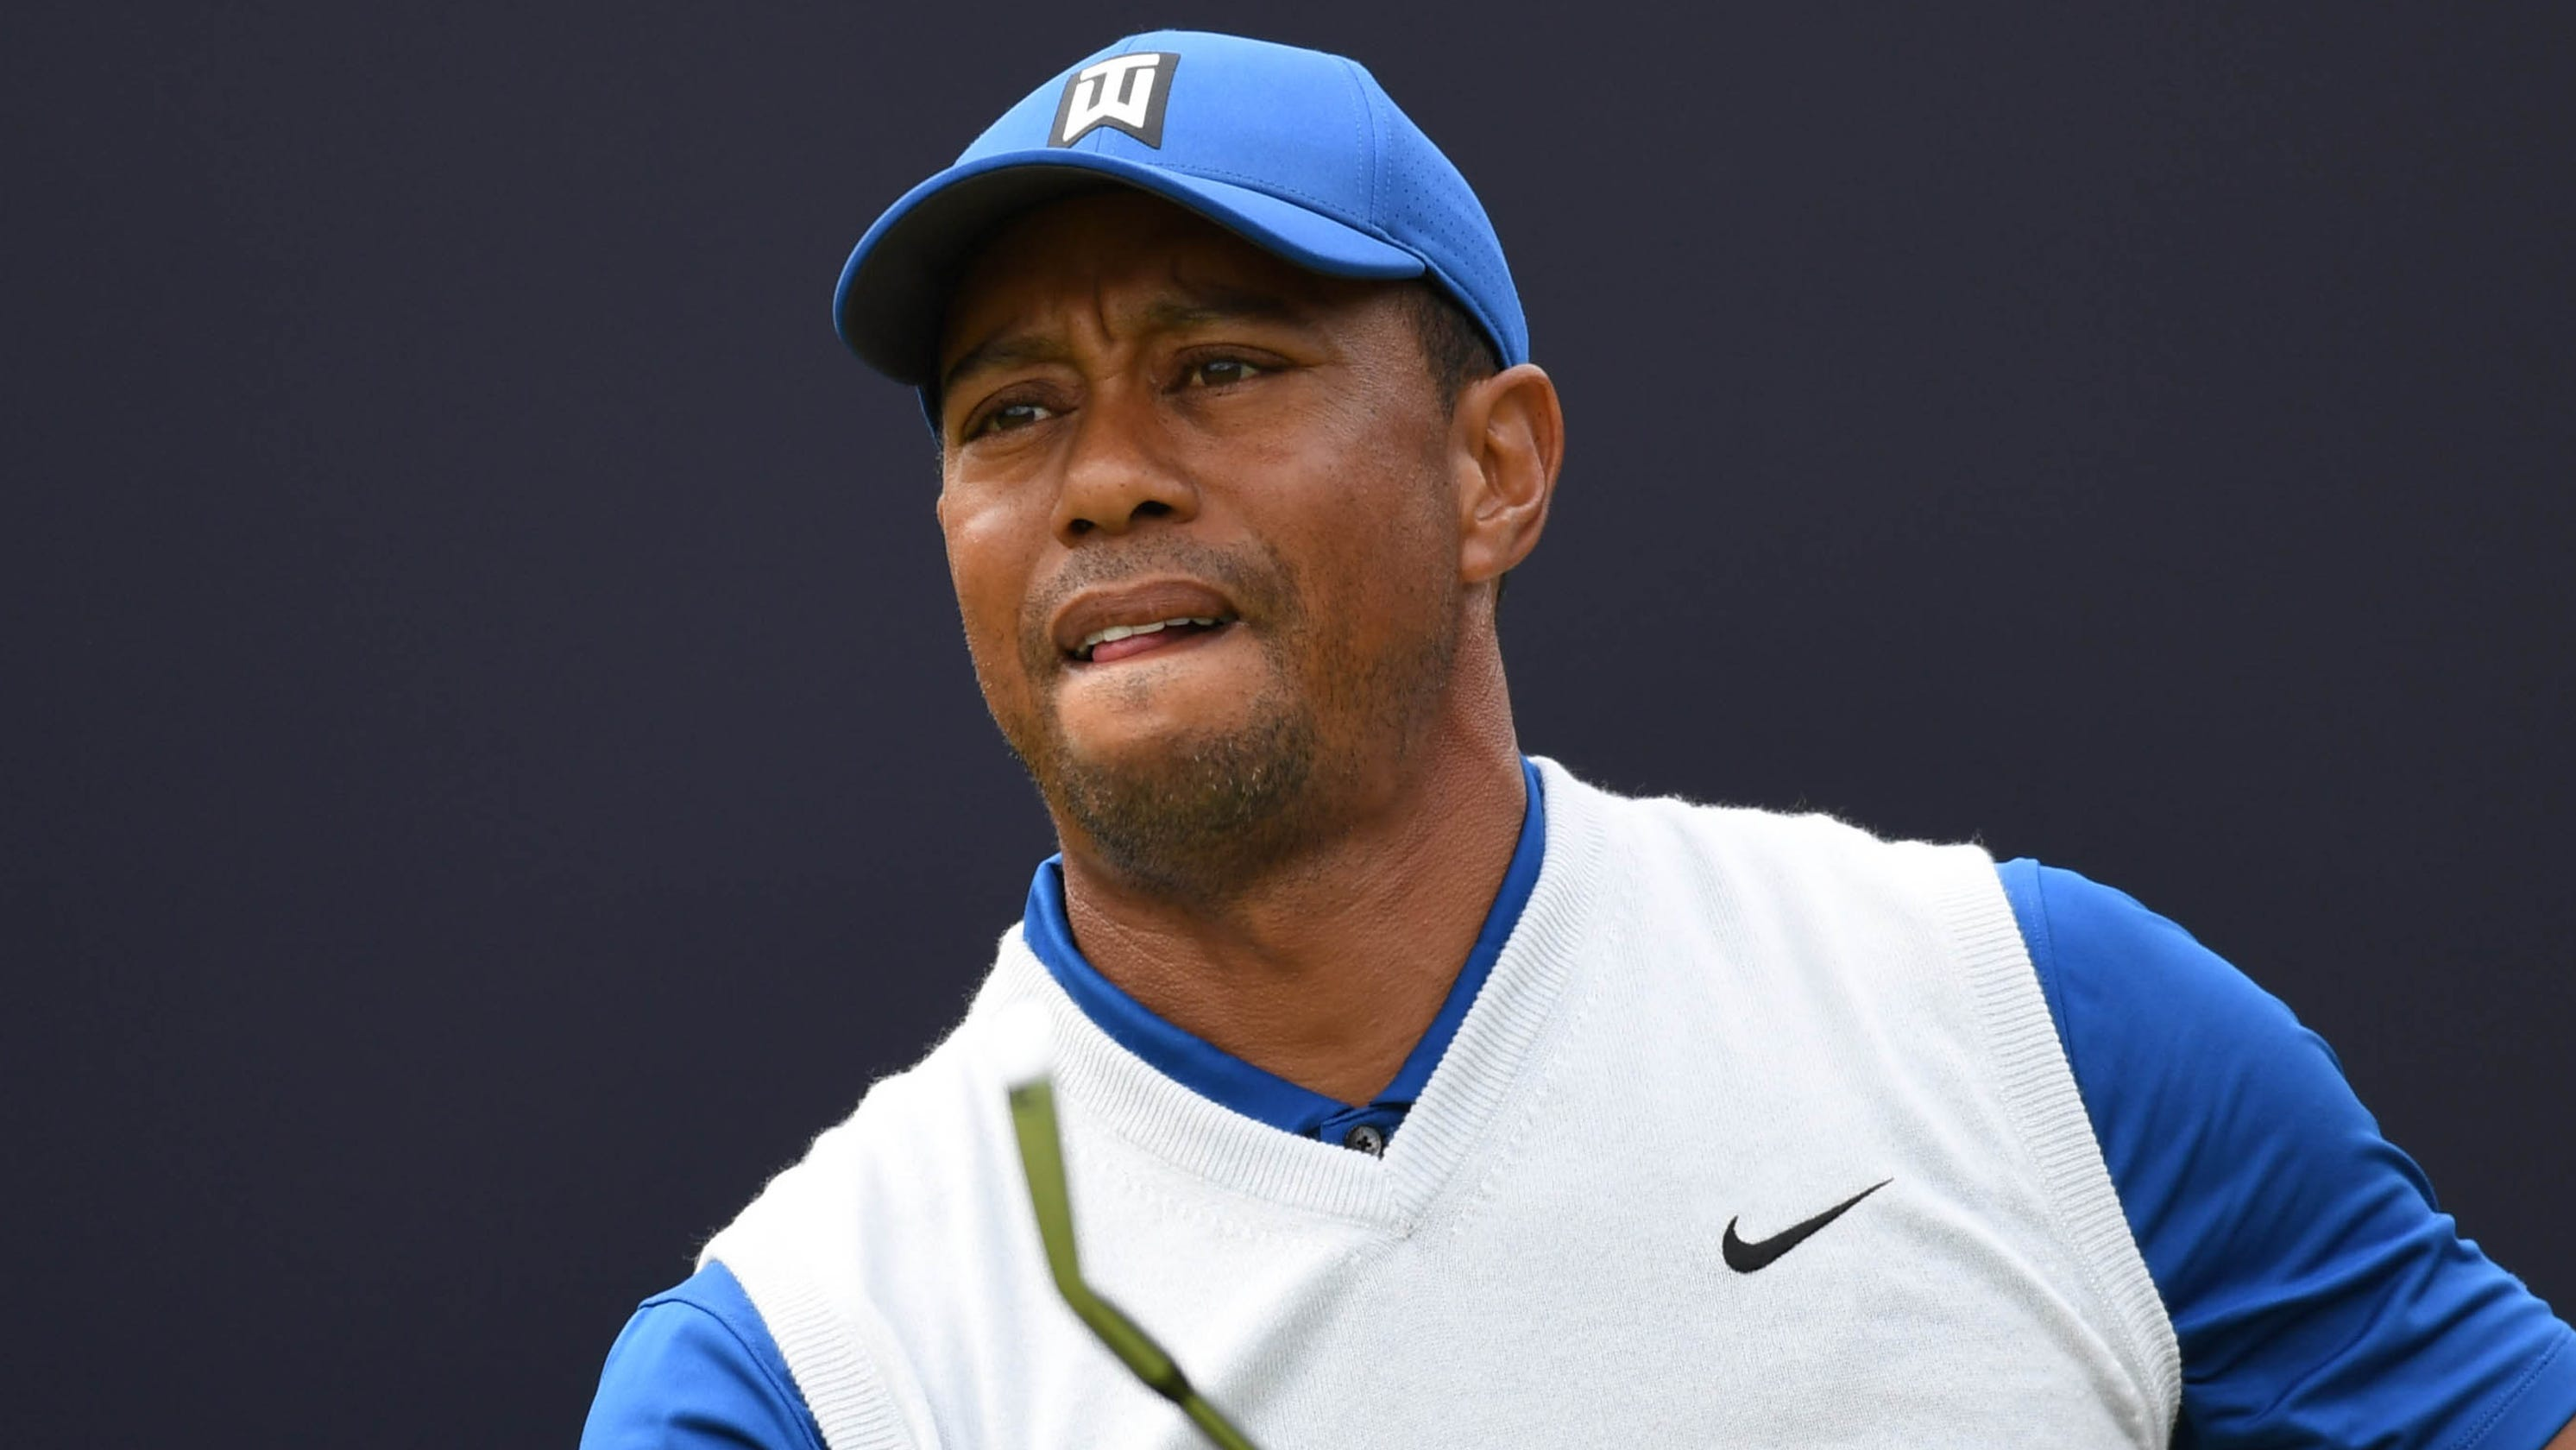 Tiger Woods falls apart in middle of his round, finishes with 7-over 78 at British Open